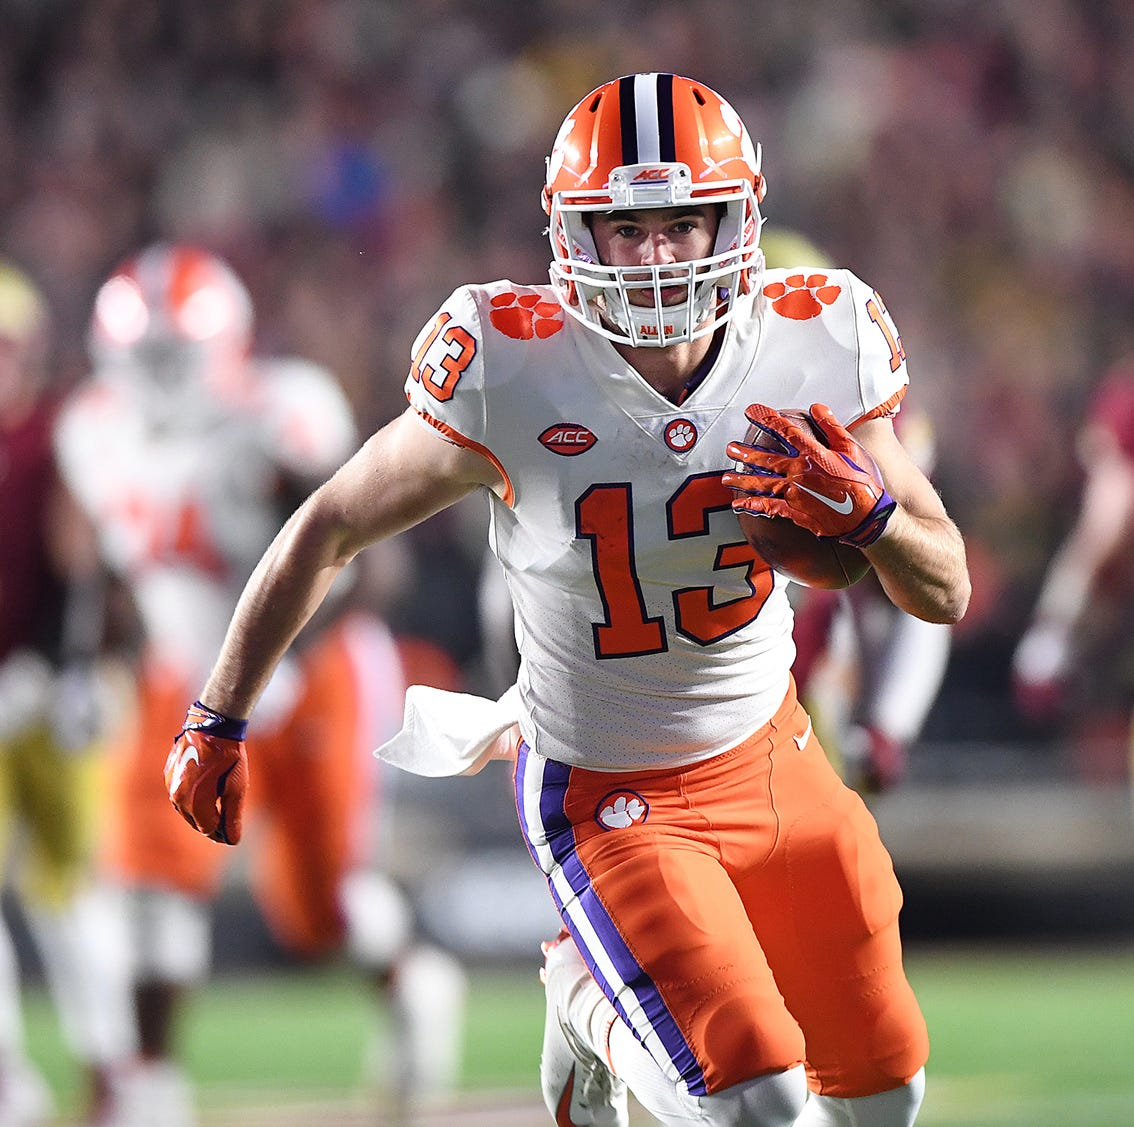 Hunter Renfrow's sound philosophy has helped Clemson claim four straight division titles